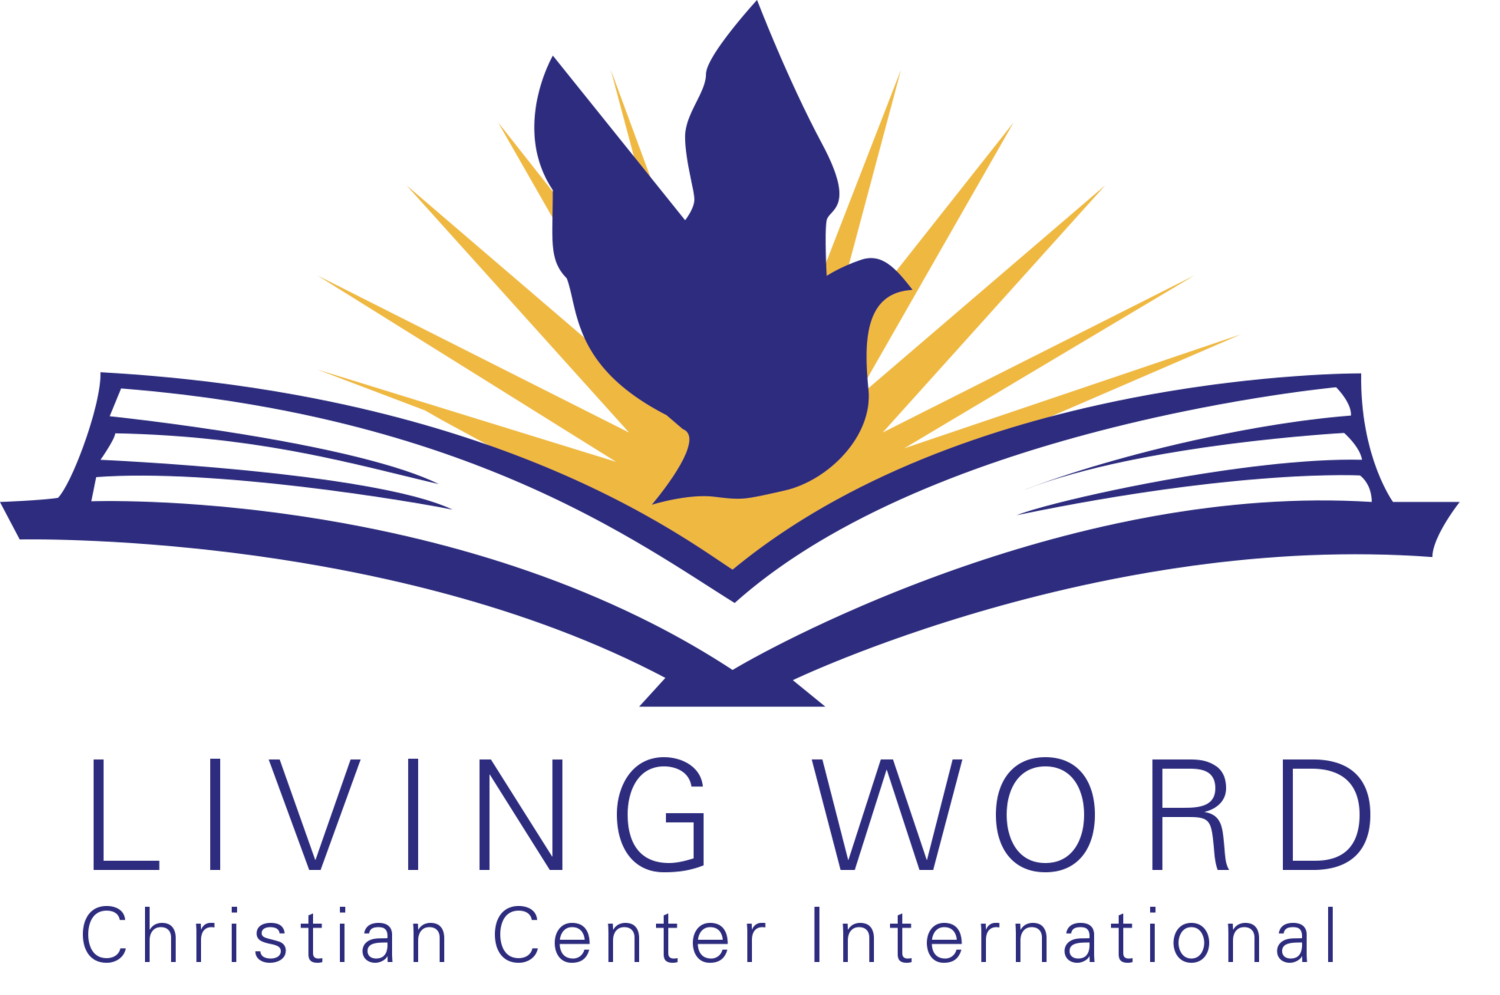 Living Word Christian Center International